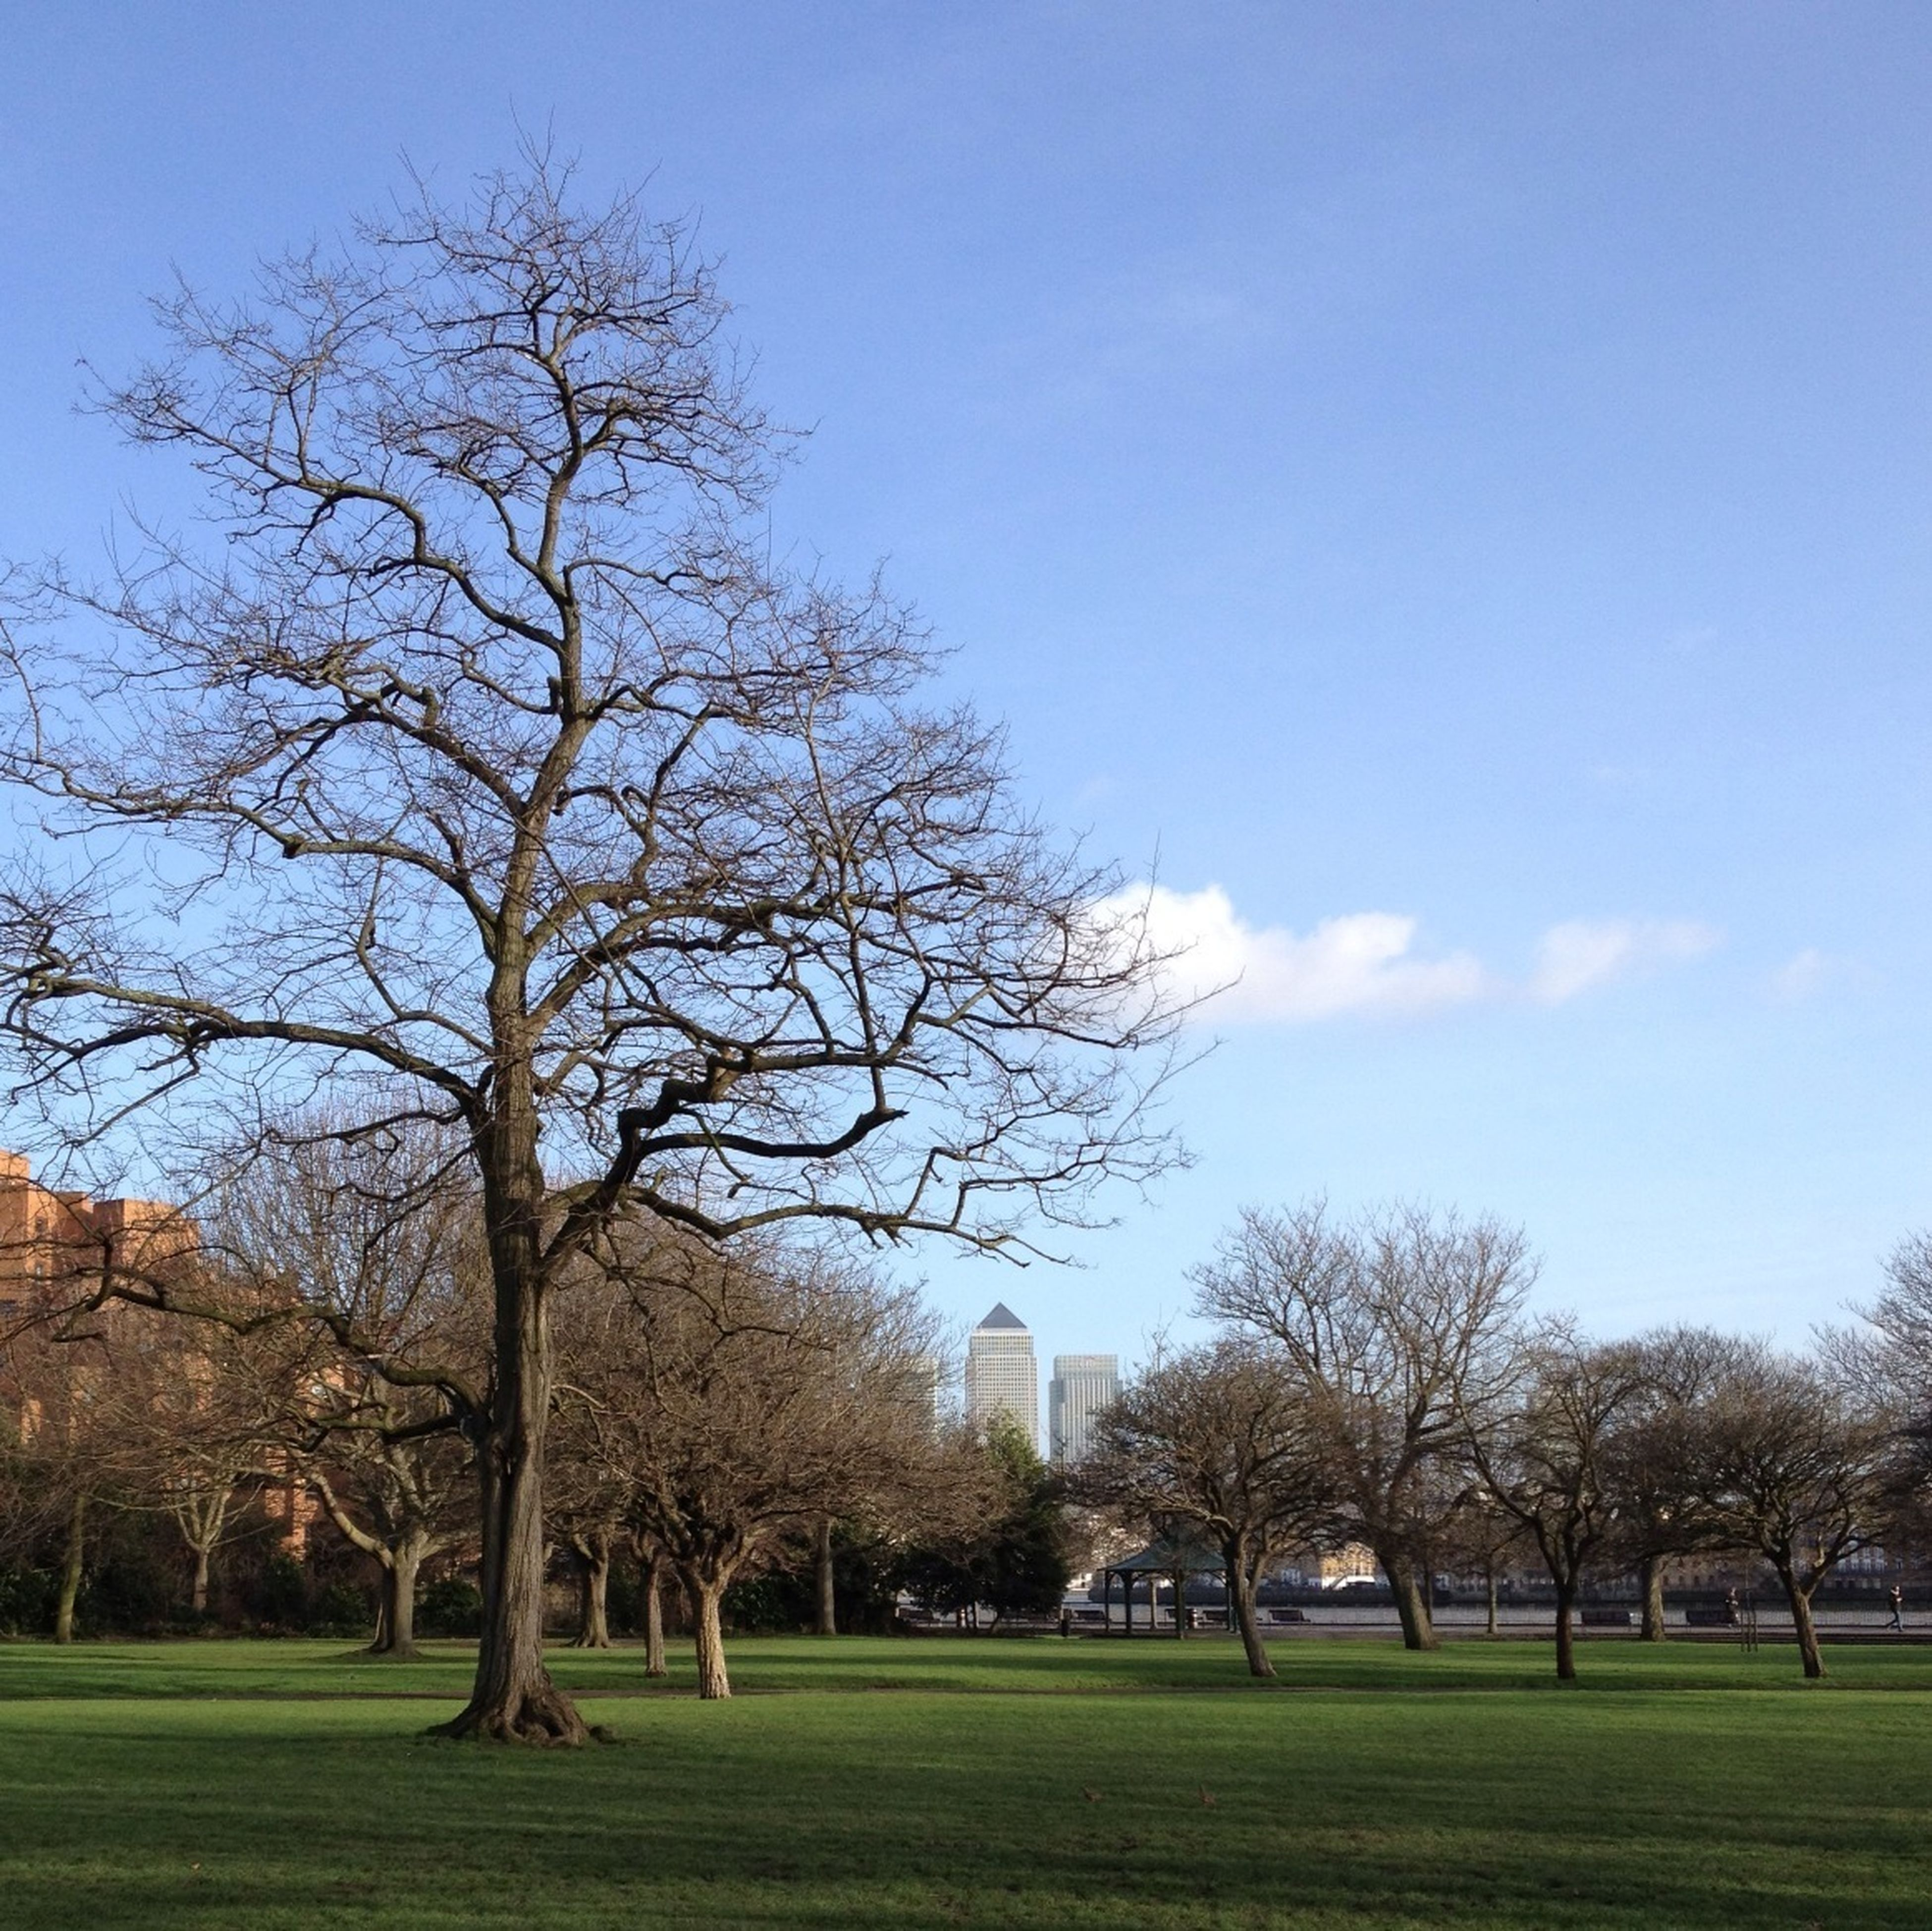 tree, grass, bare tree, sky, blue, landscape, green color, branch, tranquility, field, tranquil scene, nature, park - man made space, grassy, tree trunk, beauty in nature, growth, scenics, lawn, day